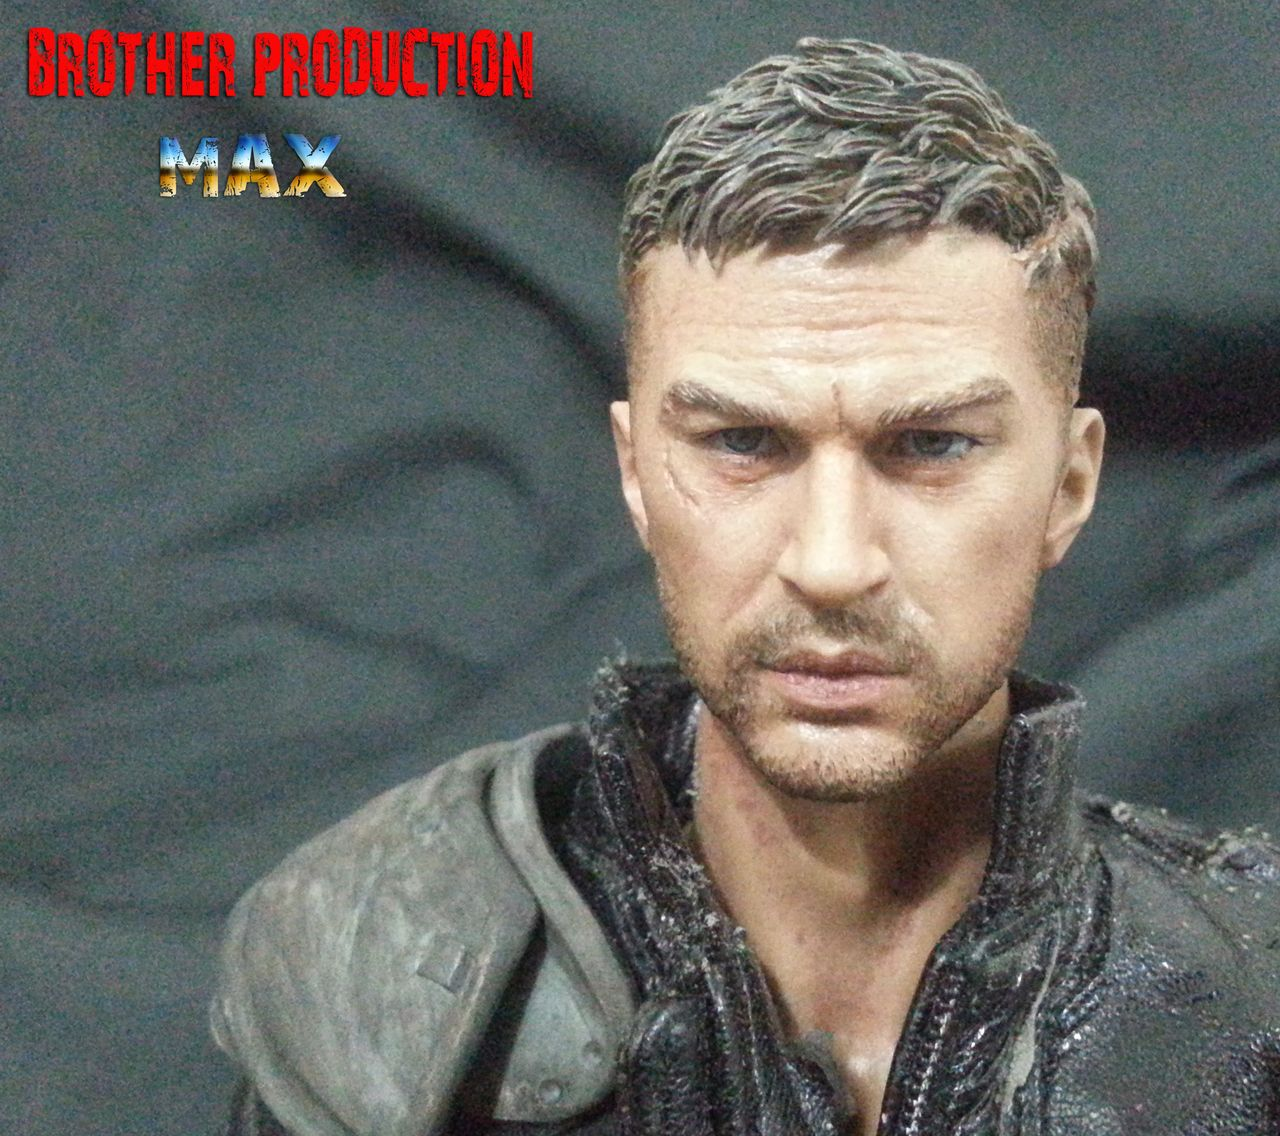 1//6 Custom Tom Cruise Head Sculpt For Hot Toys Phicen Male Figure SHIP FROM USA